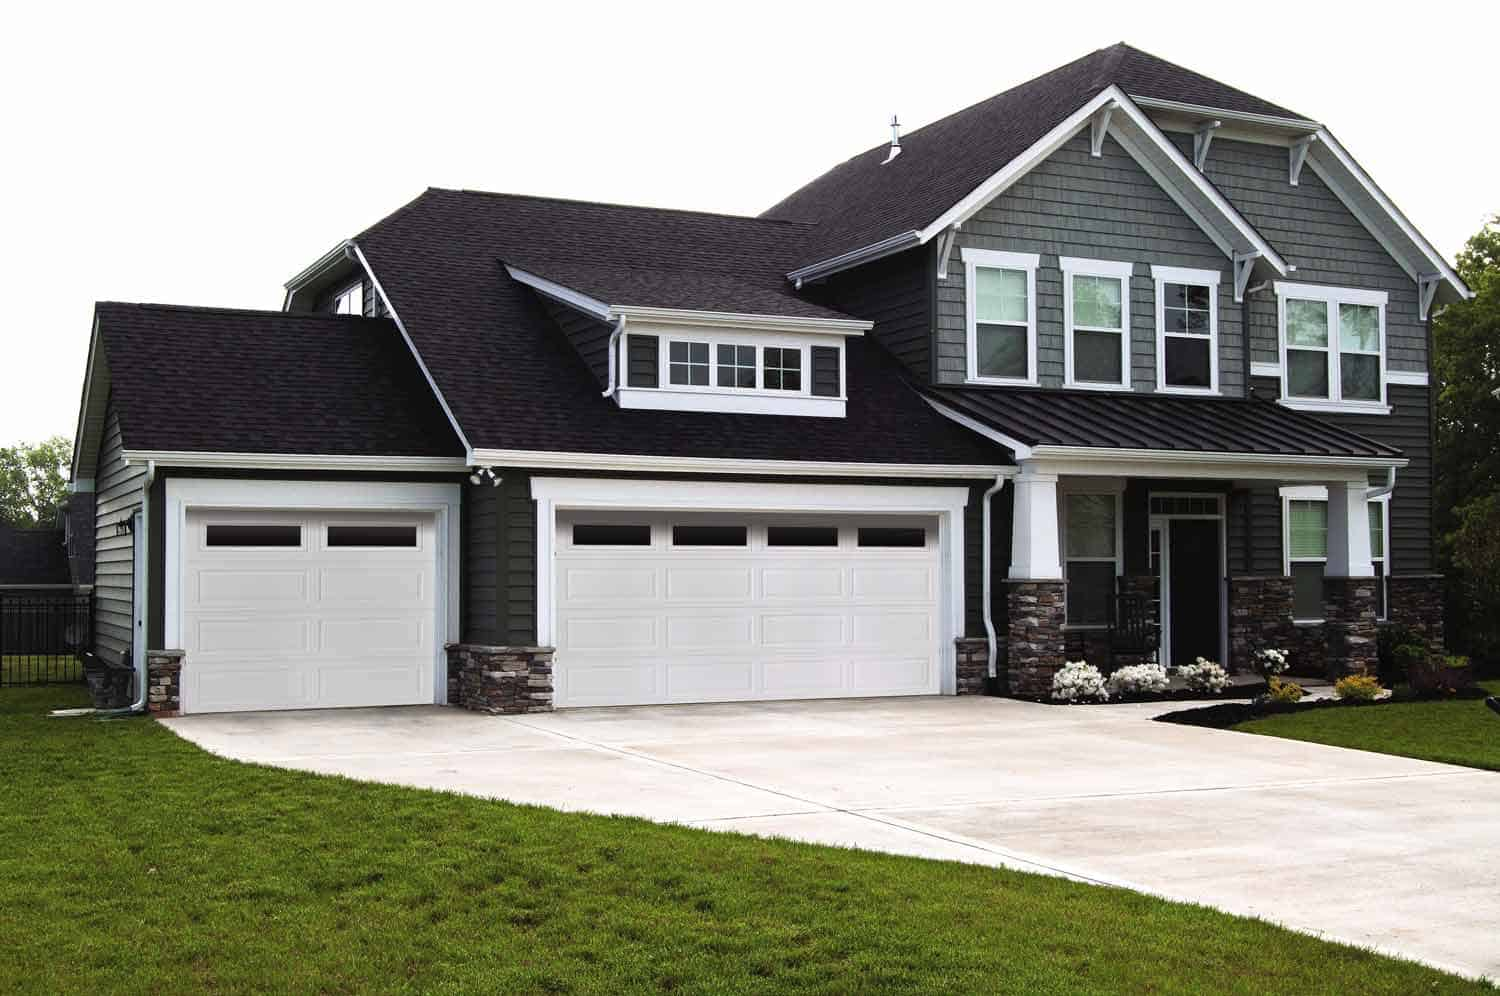 New Home Garage Door | Fort Wayne Door | Fort Wayne, IN